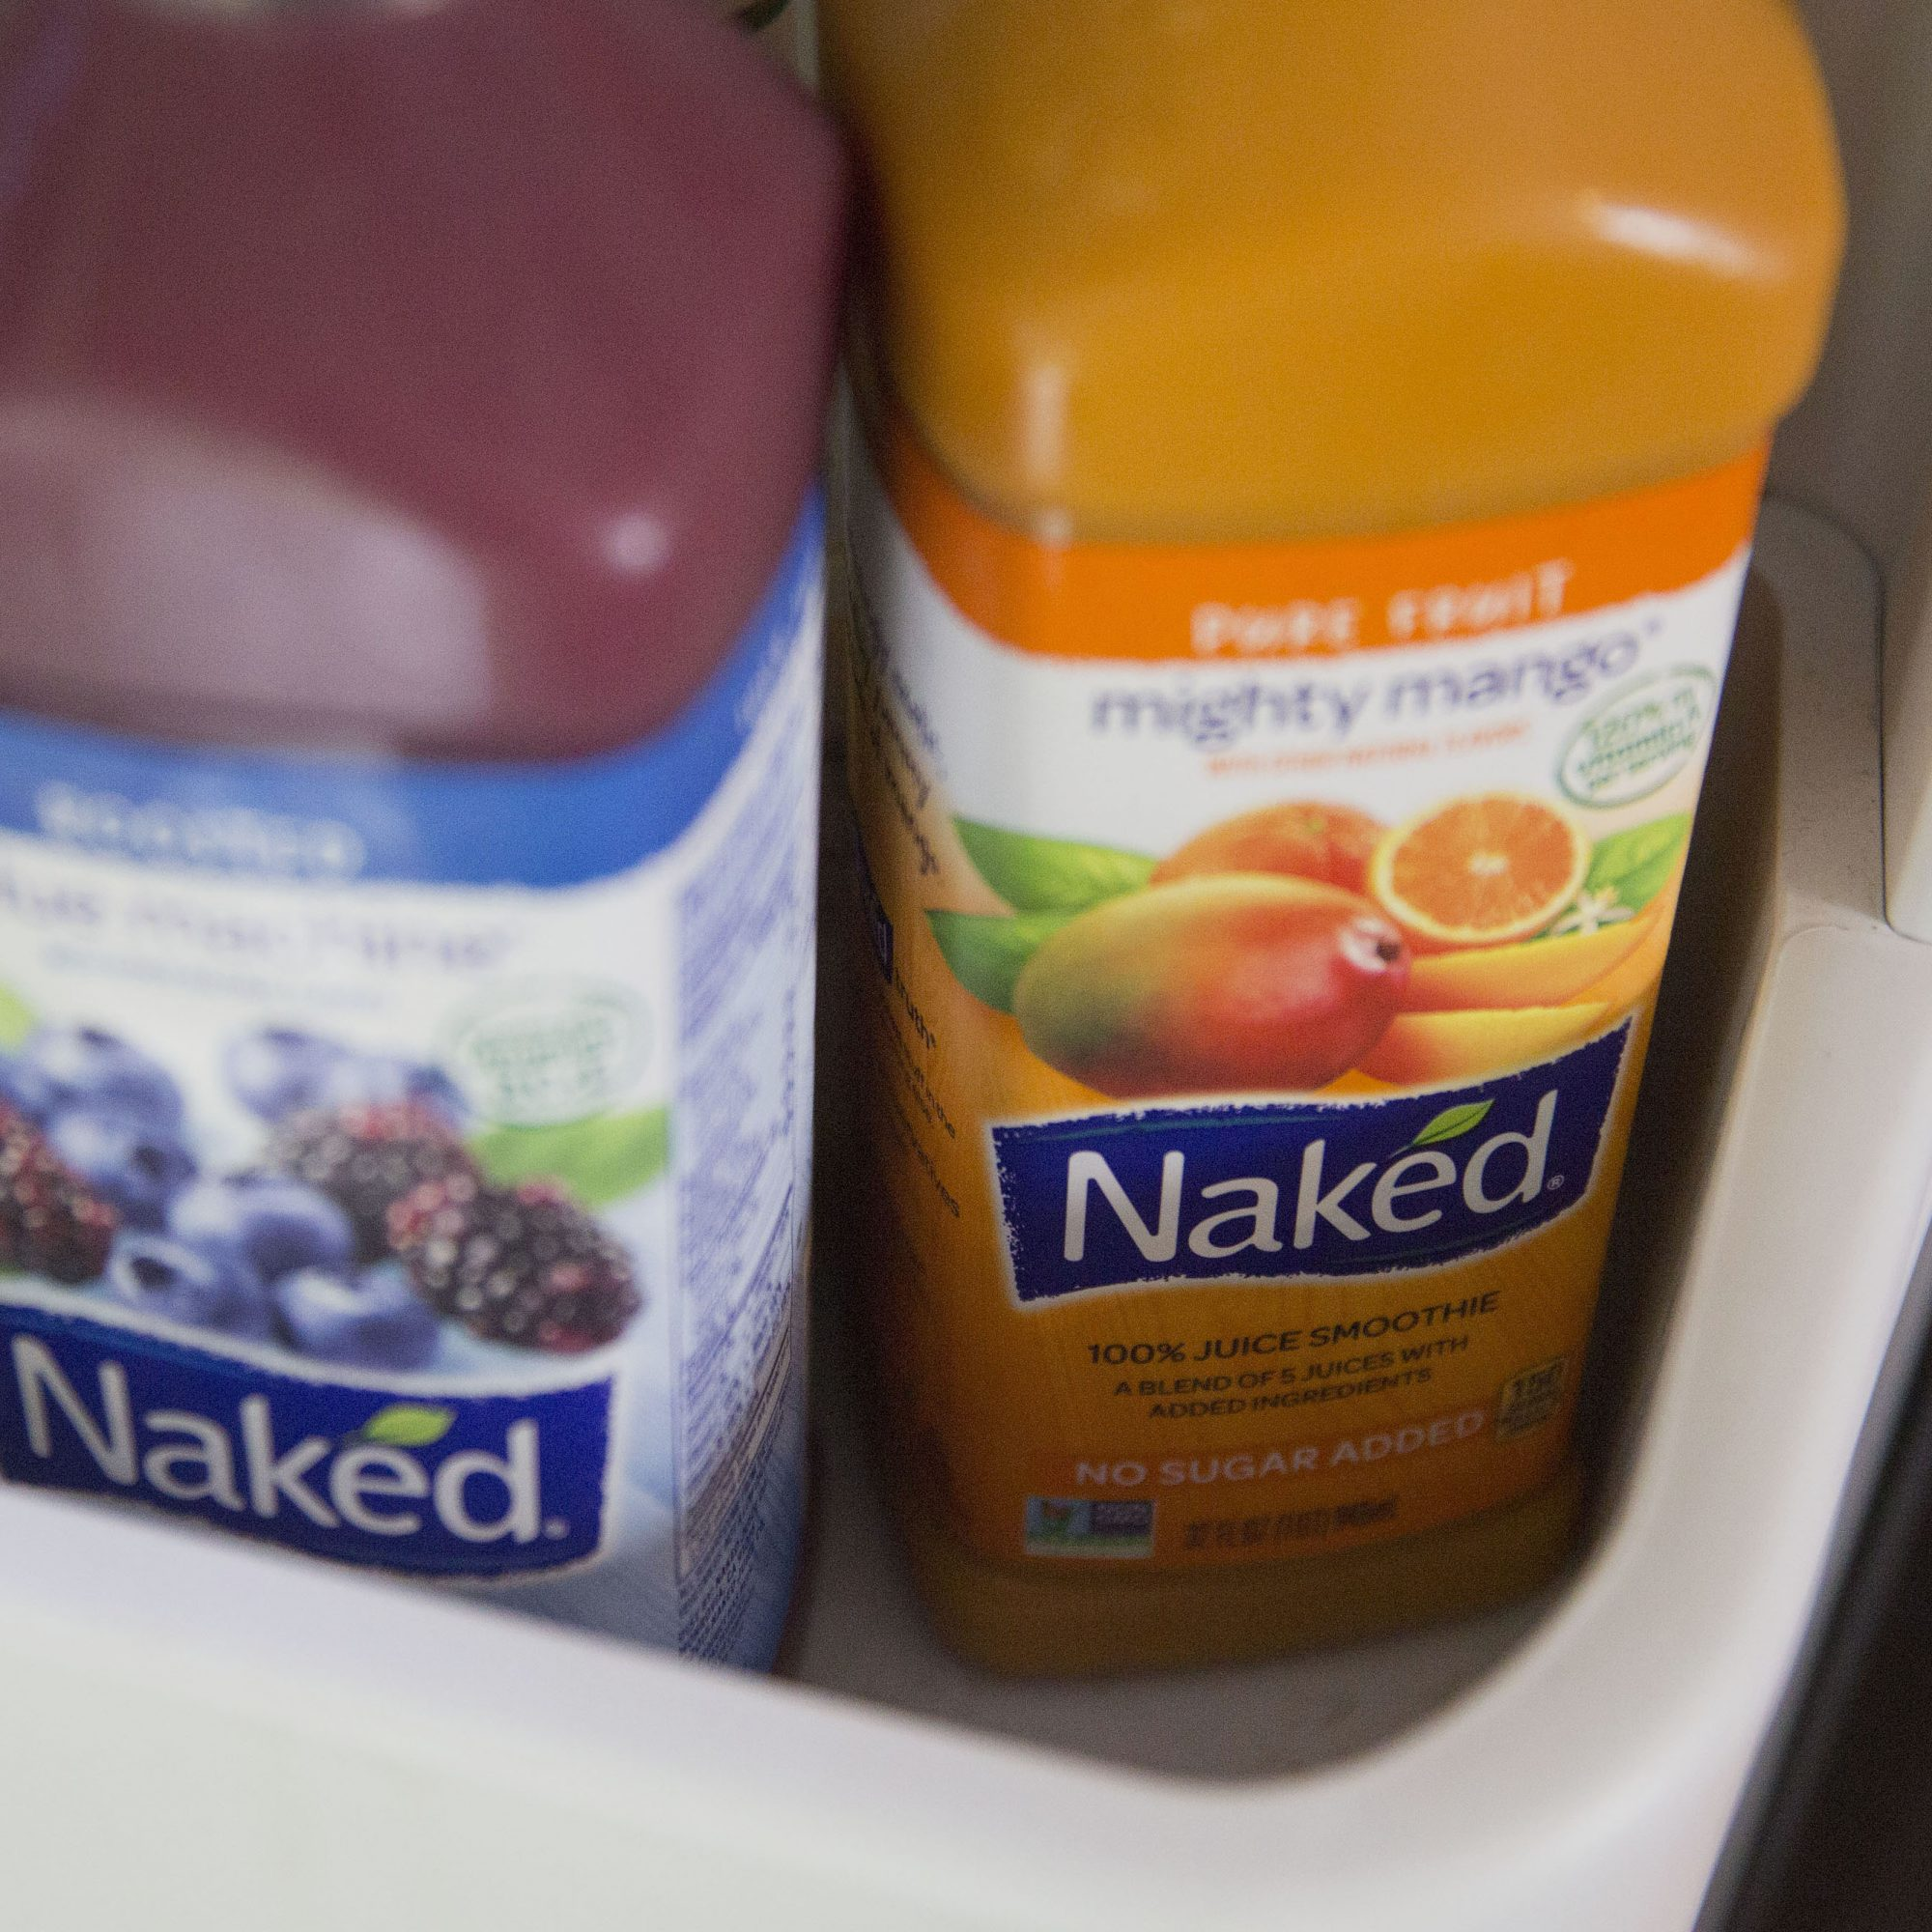 Naked Juice Will Change Labels After Accusation That They're Misleading